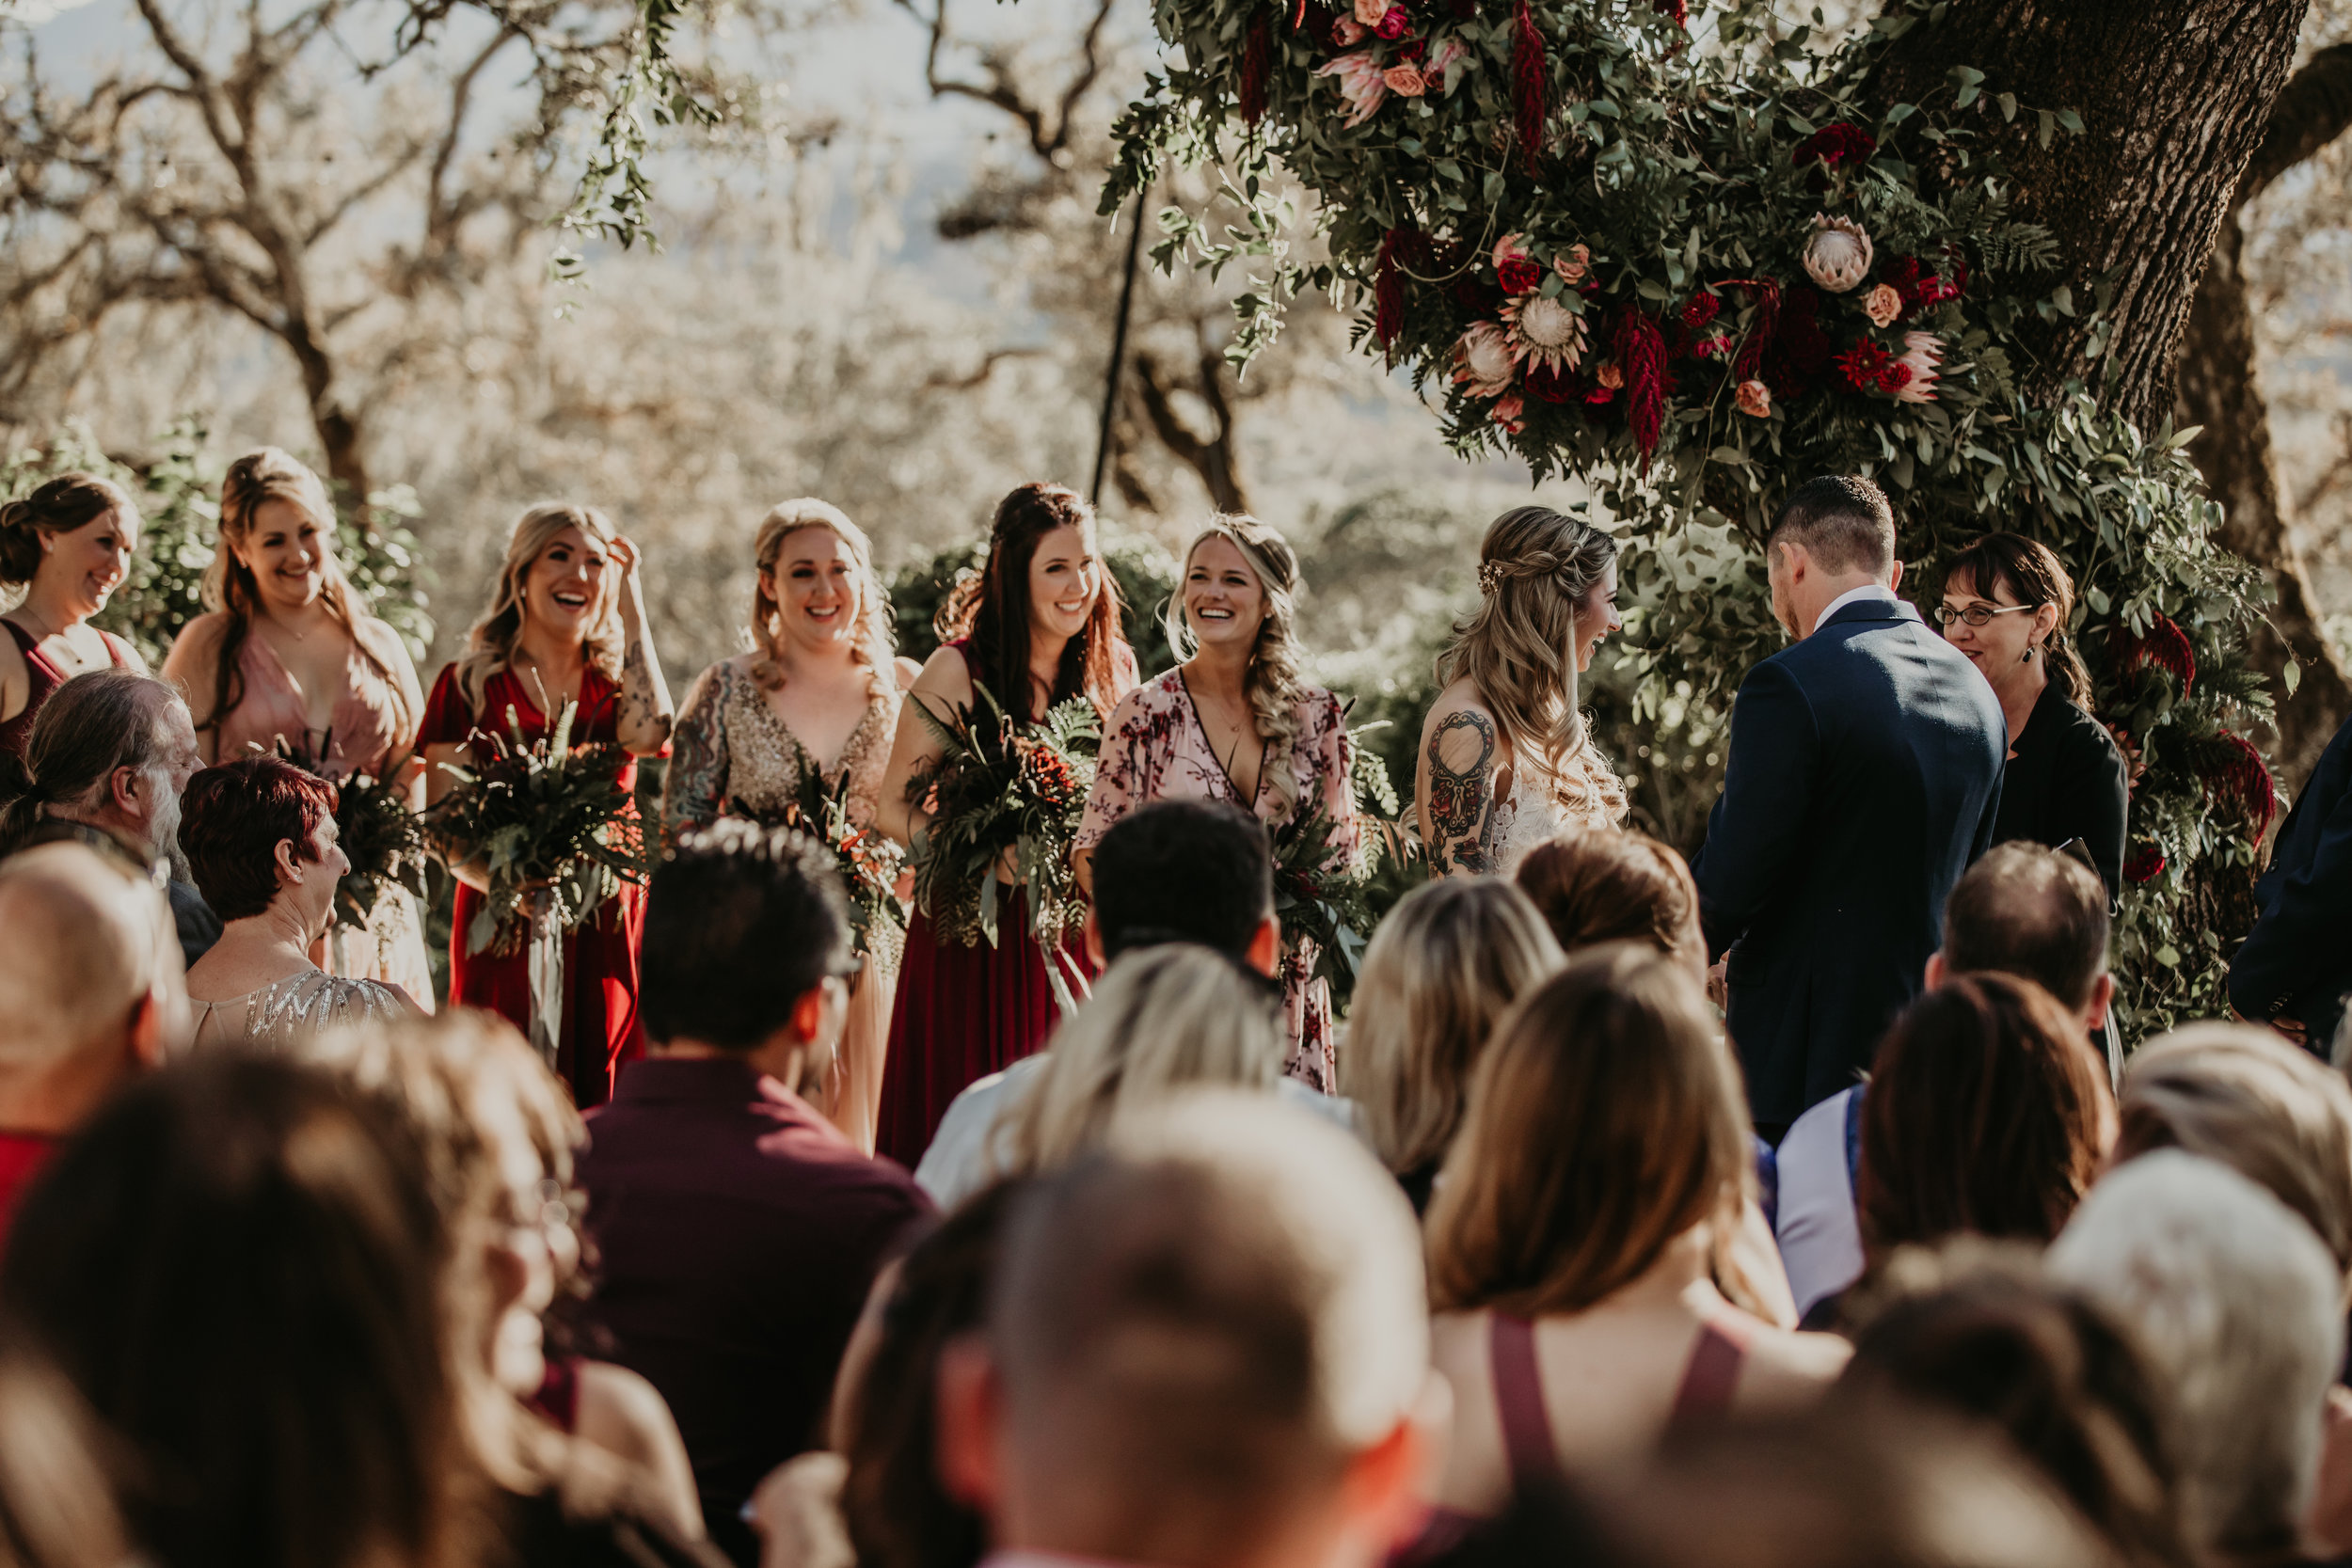 Nontraditional bridal bouquets and ceremony flowers. Venn Floral with Vera Frances Photography at Beltane Ranch in Glen Ellen, California.